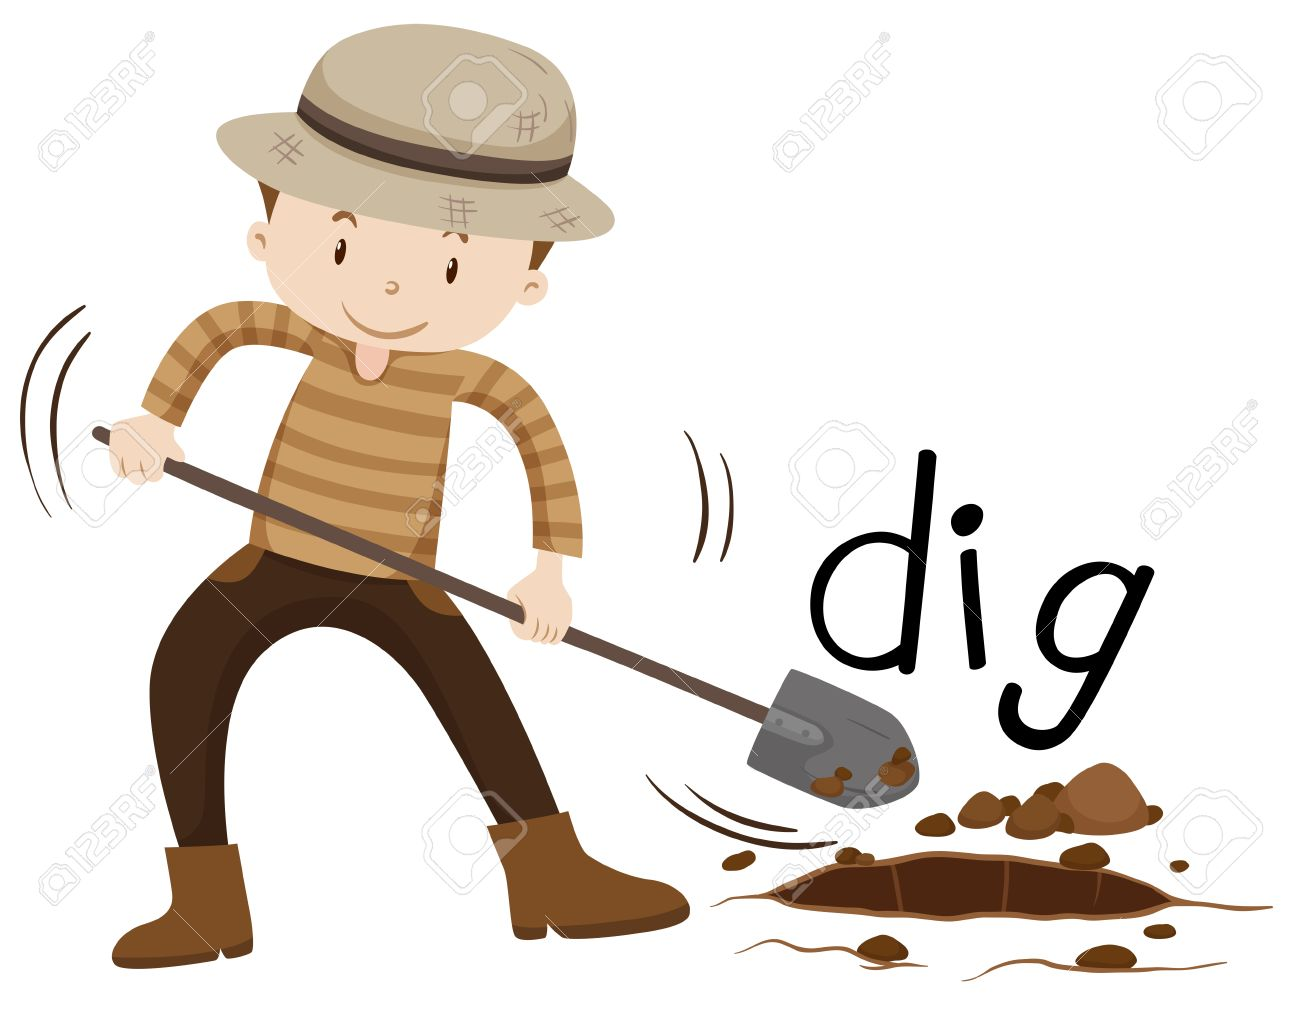 Man with shovel digging a hole illustration.